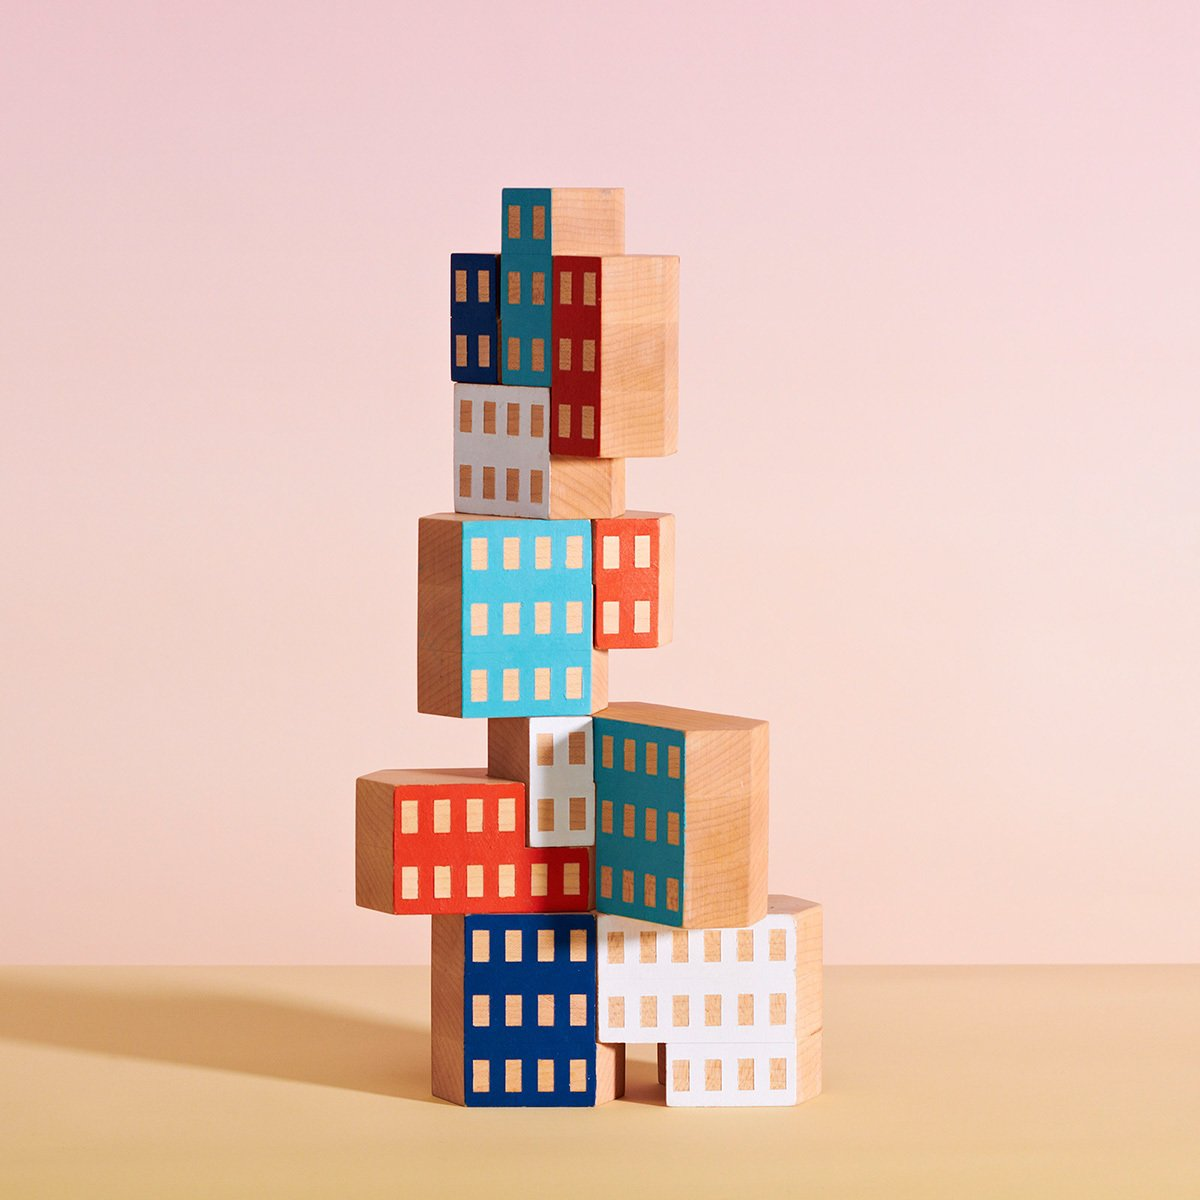 Blockitecture Wooden Blocks, $25 at the Dwell Store  This set of ten blocks takes classic building blocks to new, architectural heights. Each block is hand painted, giving the blocks a distinctive finish. Combine multiple sets to create tall towers or clusters of modern buildings.  Photo 1 of 8 in Dwell Store Gift Guide: For Kids